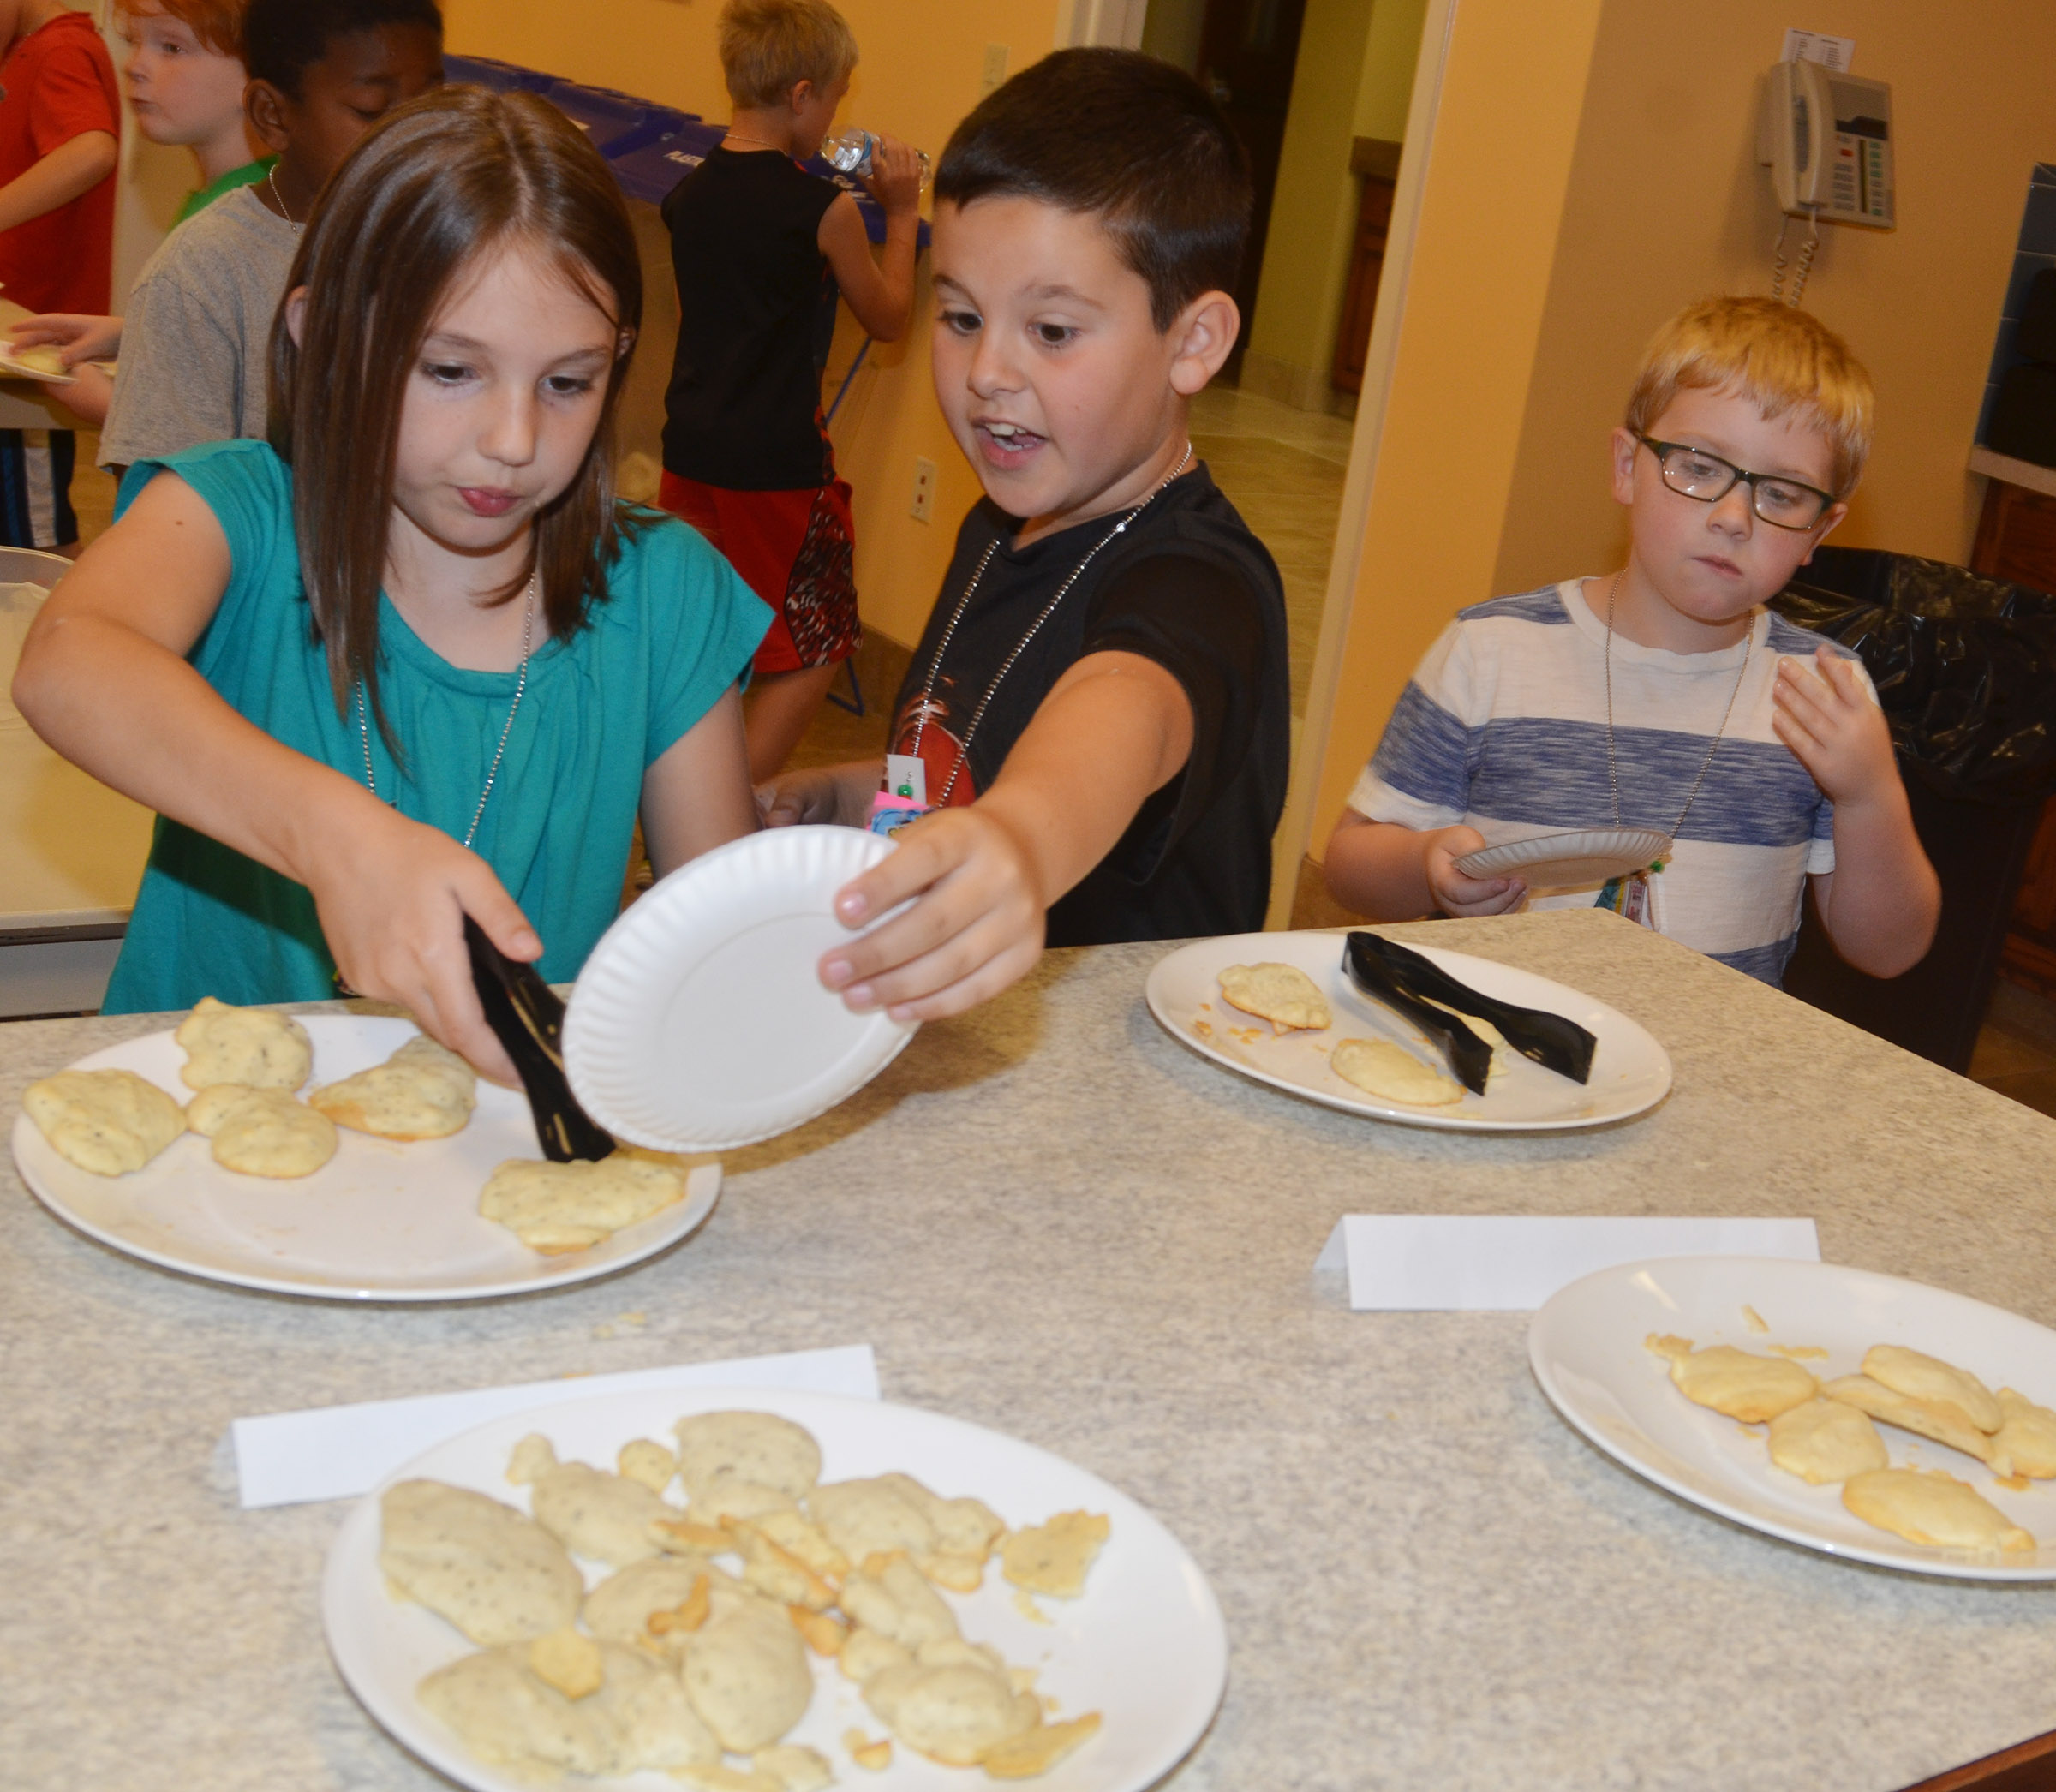 CES second-graders, from left, Kairi Tucker, Damien Clark and Aidan Bowles sample biscuits that they made together.